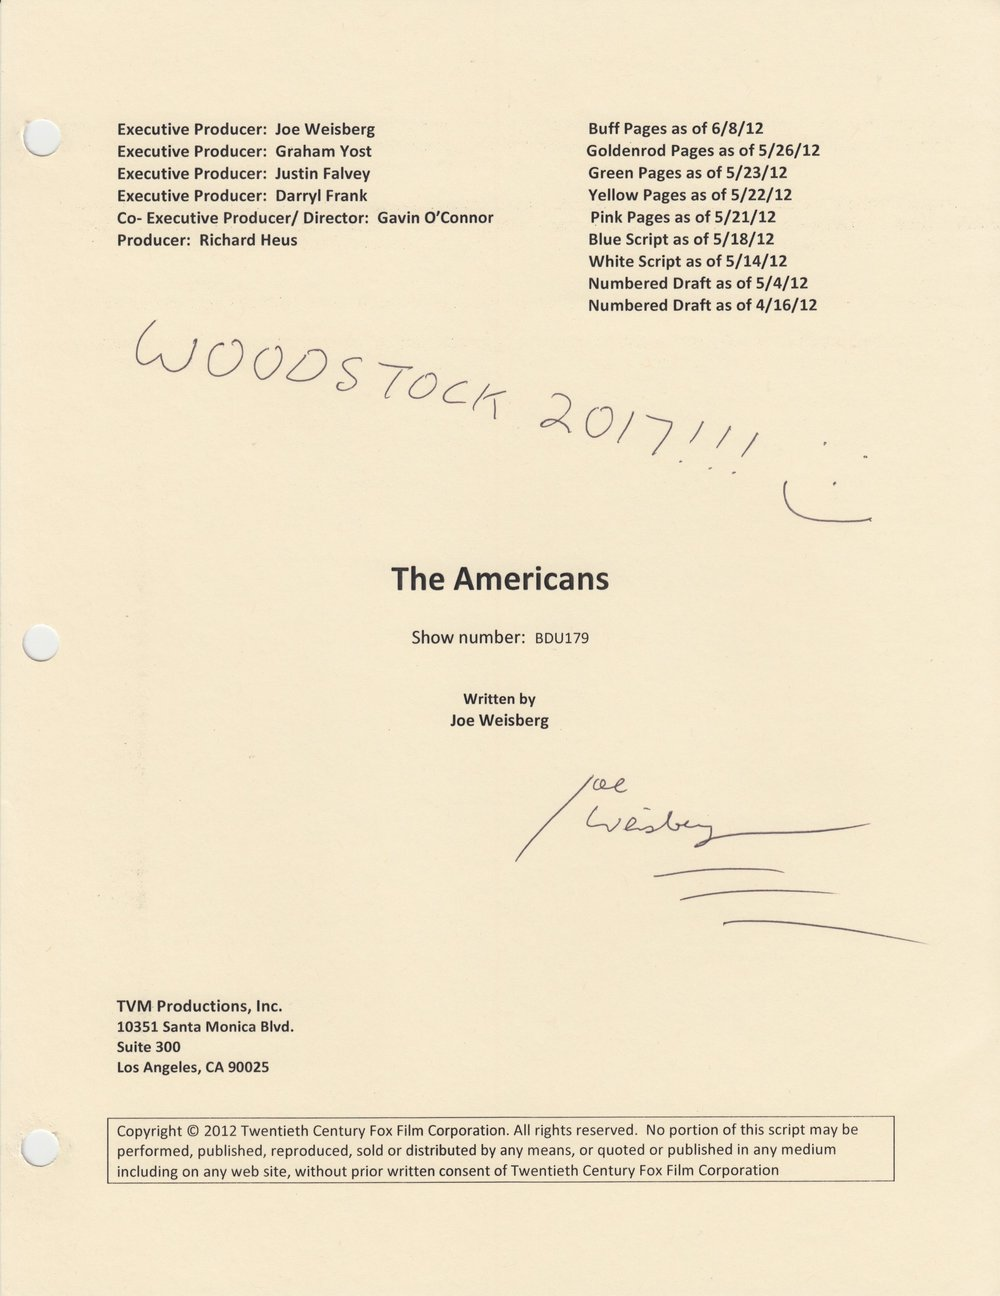 The Americans Signed Script.jpeg